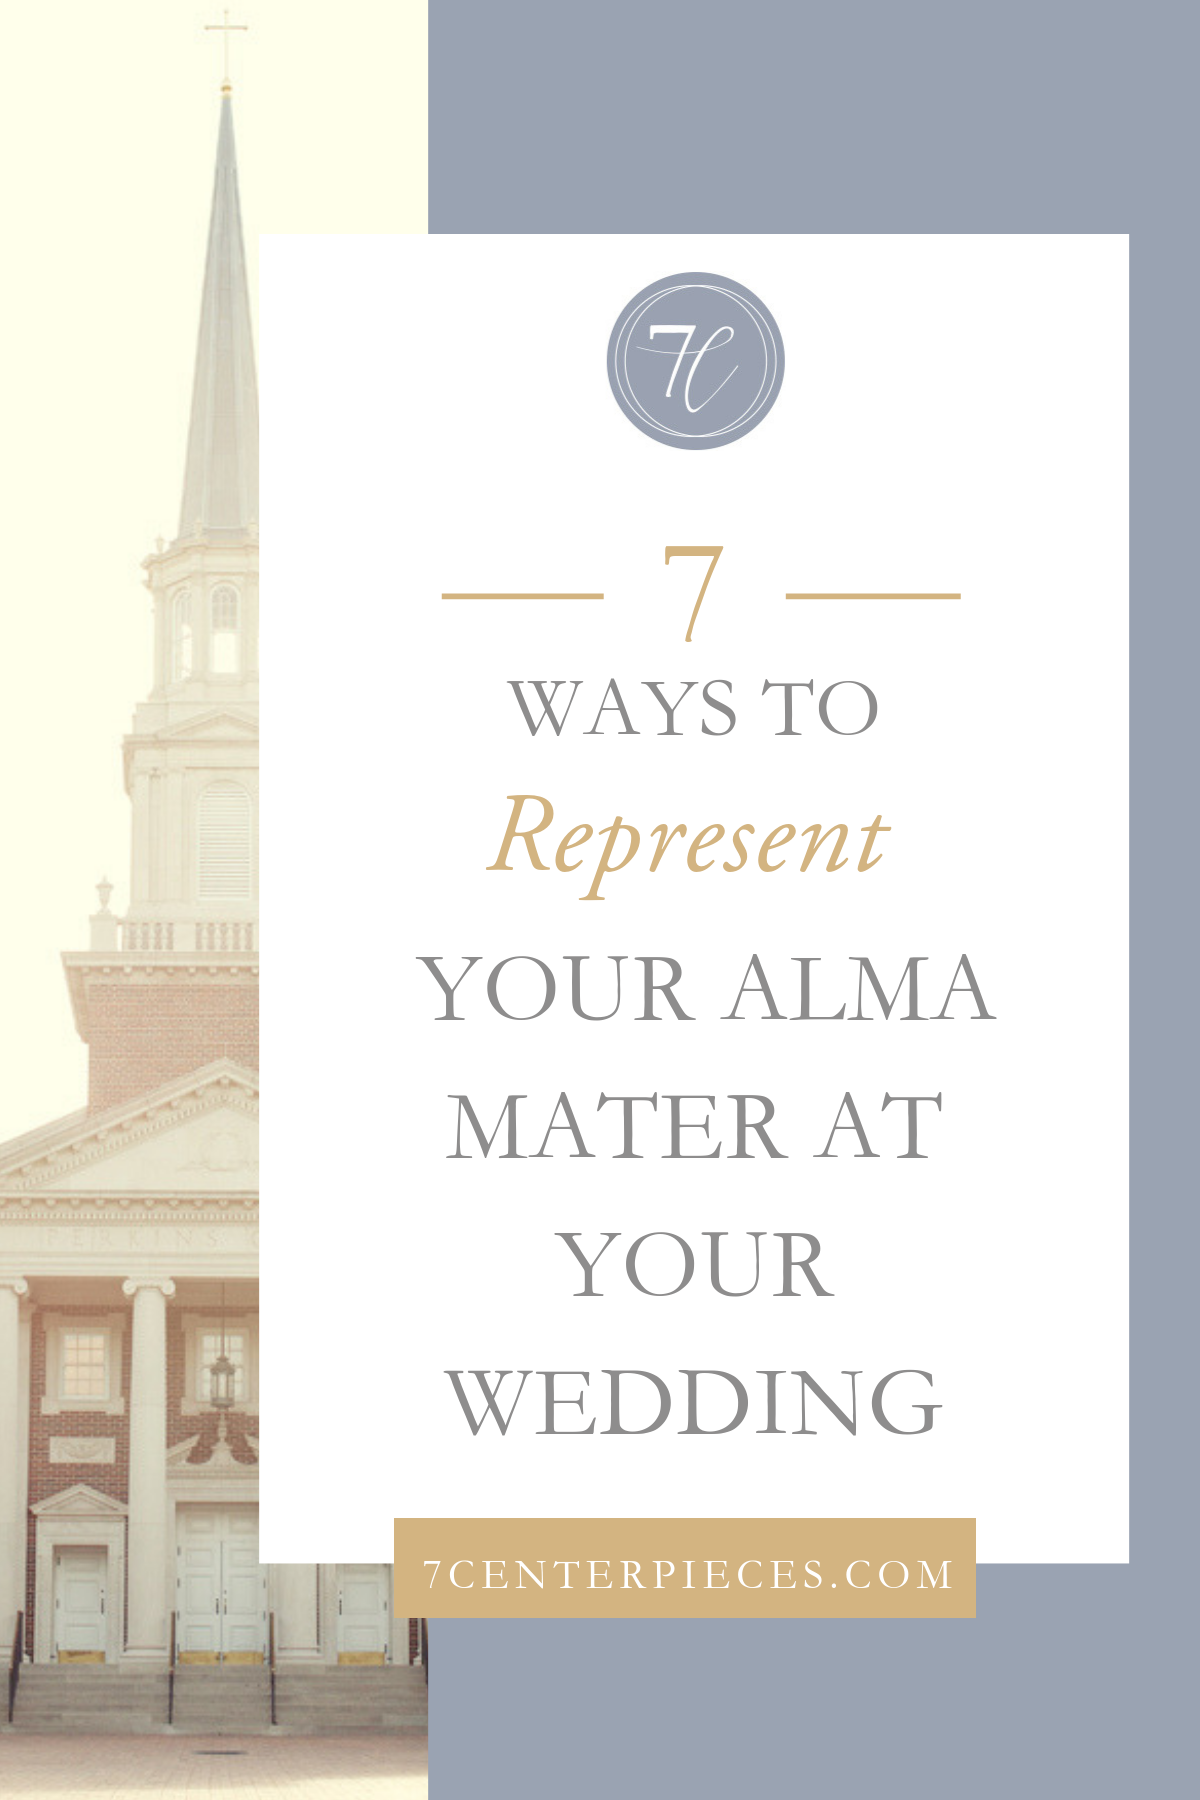 7 Ways to Represent Your Alma Mater at Your Wedding